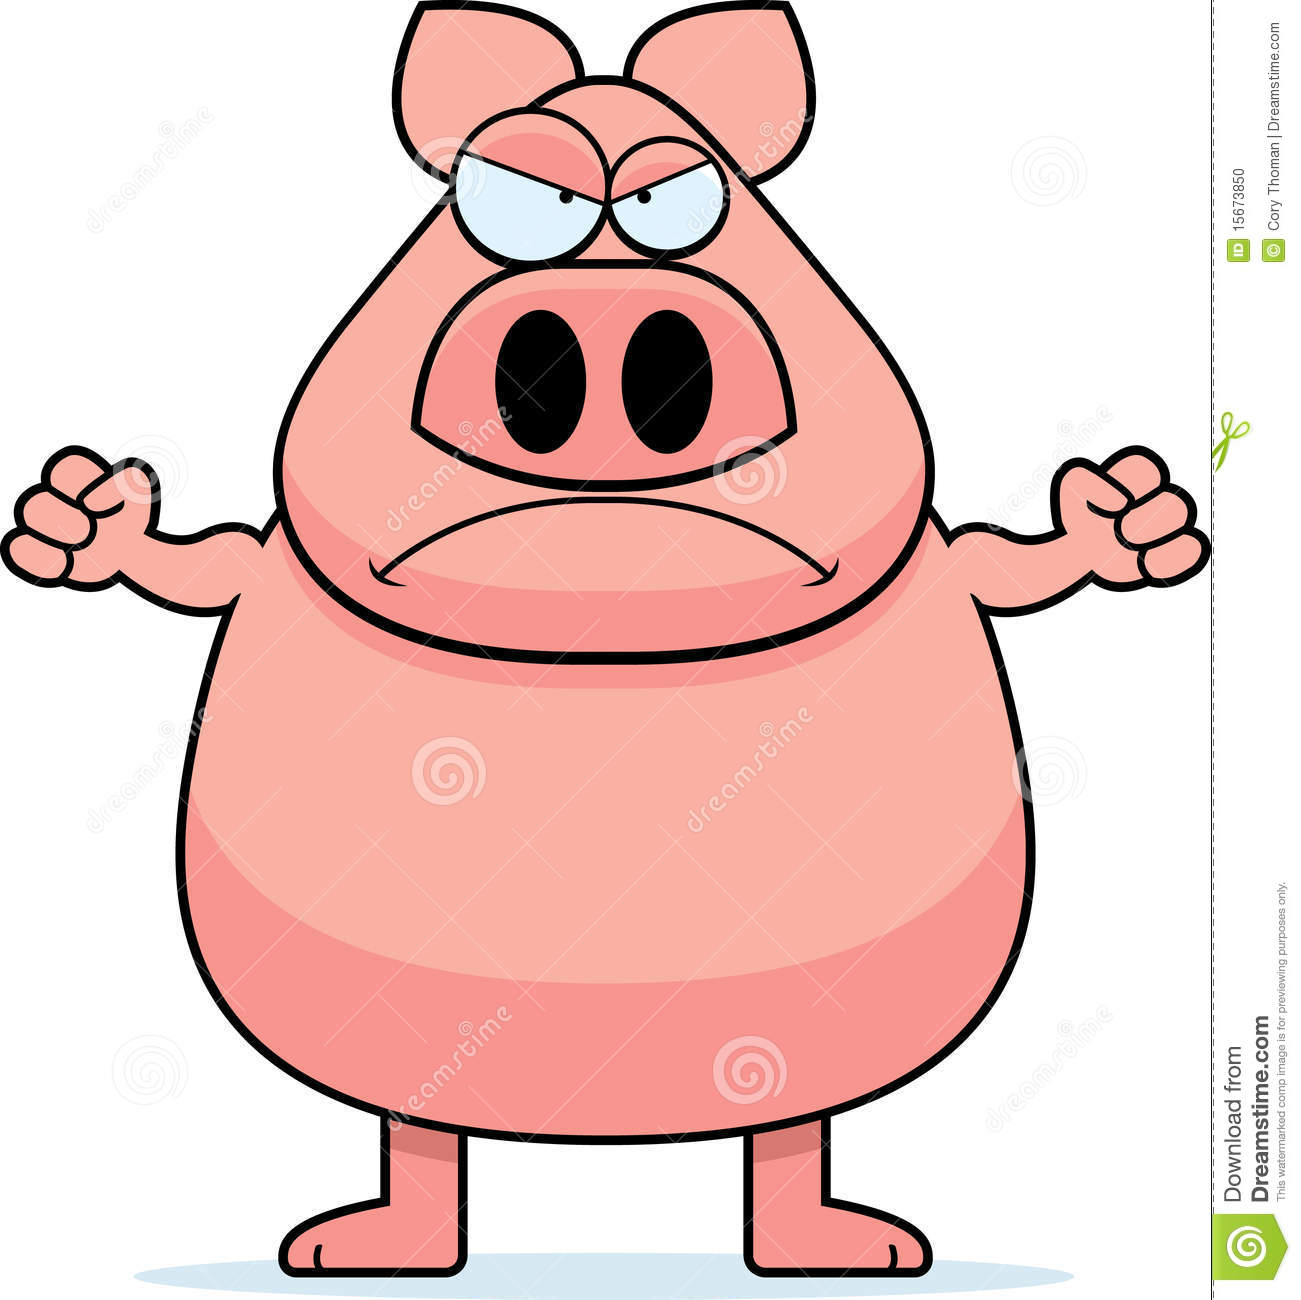 1301x1300 Collection Of Big Bad Pig Clipart High Quality, Free